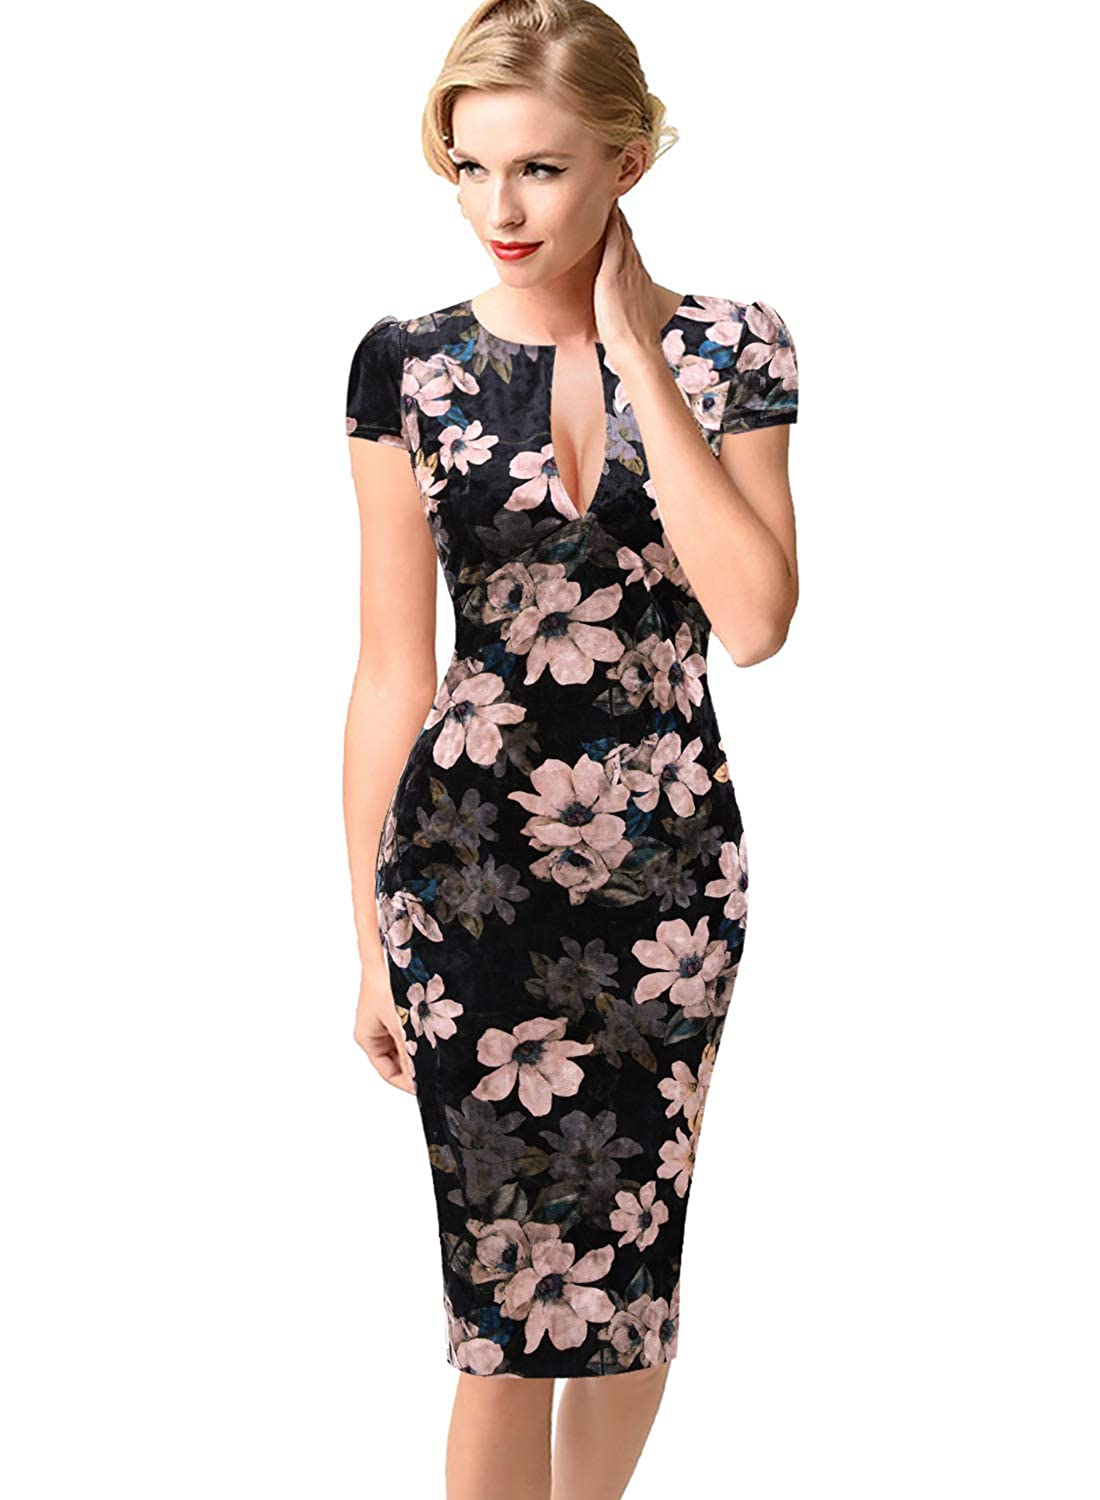 Black Velvet Multi Floral Print 2 VfEmage Womens Sexy V Neck Party Cocktail Work Slim Fitted Pencil Bodycon Dress